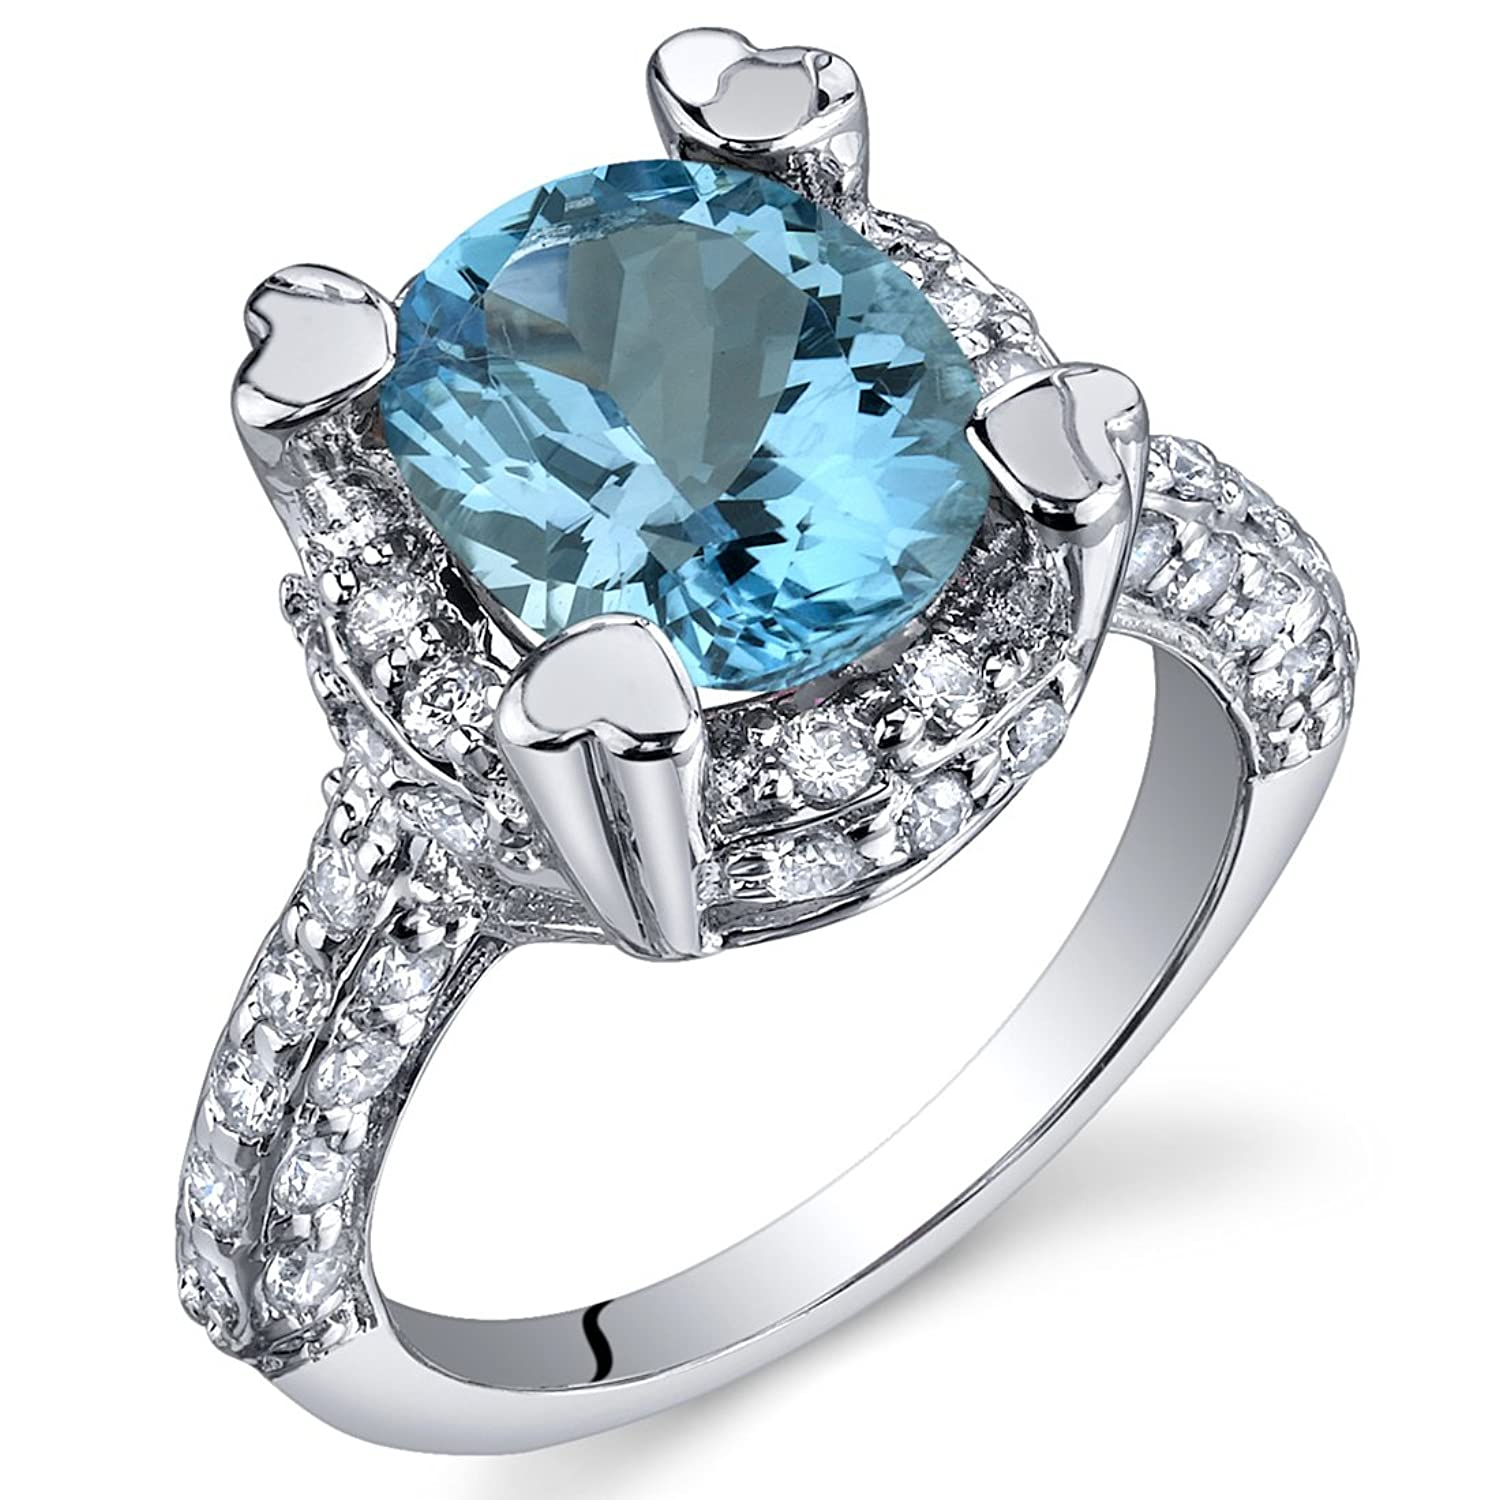 Royal Splendor 3.00 Carats Swiss Blue Topaz Ring in Sterling Silver Rhodium Nickel Finish Sizes 5 to 9